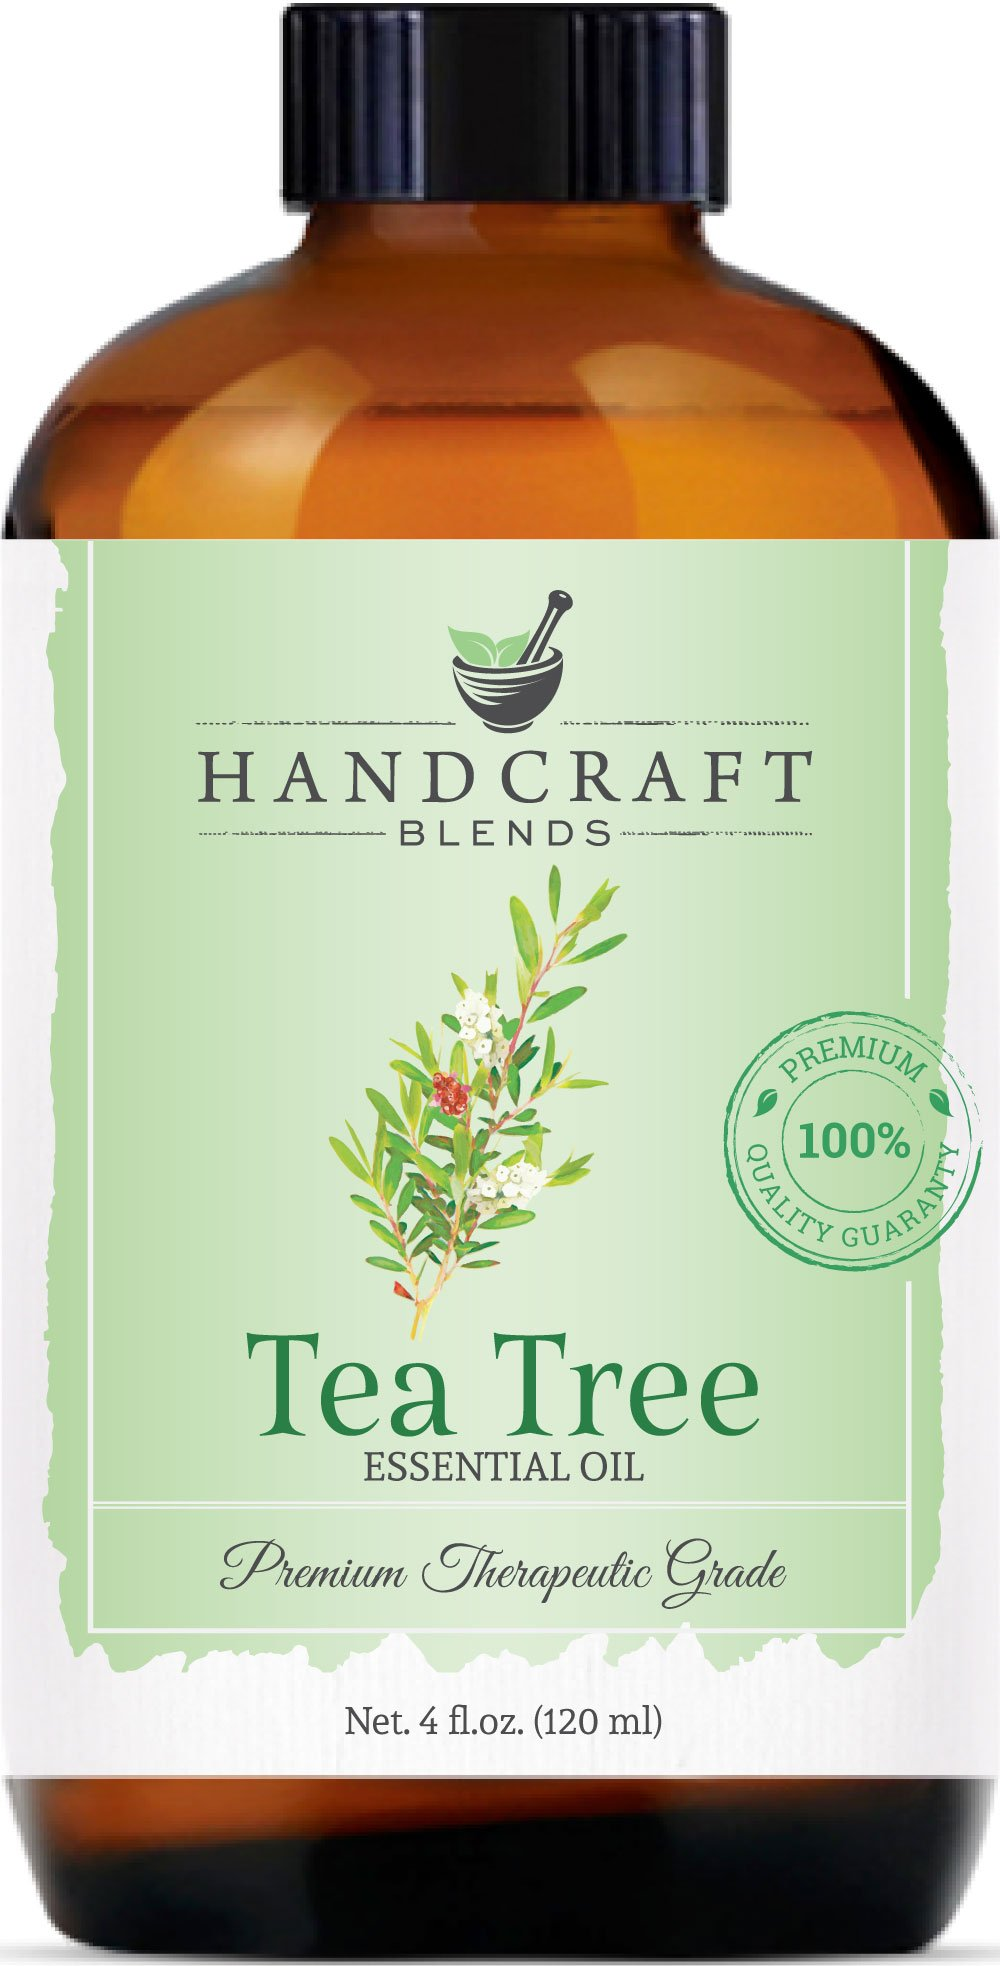 Handcraft Tea Tree Essential Oil - Huge 4 OZ - 100% Pure & Natural – Premium Therapeutic Grade with Premium Glass Dropper by Handcraft Blends (Image #1)